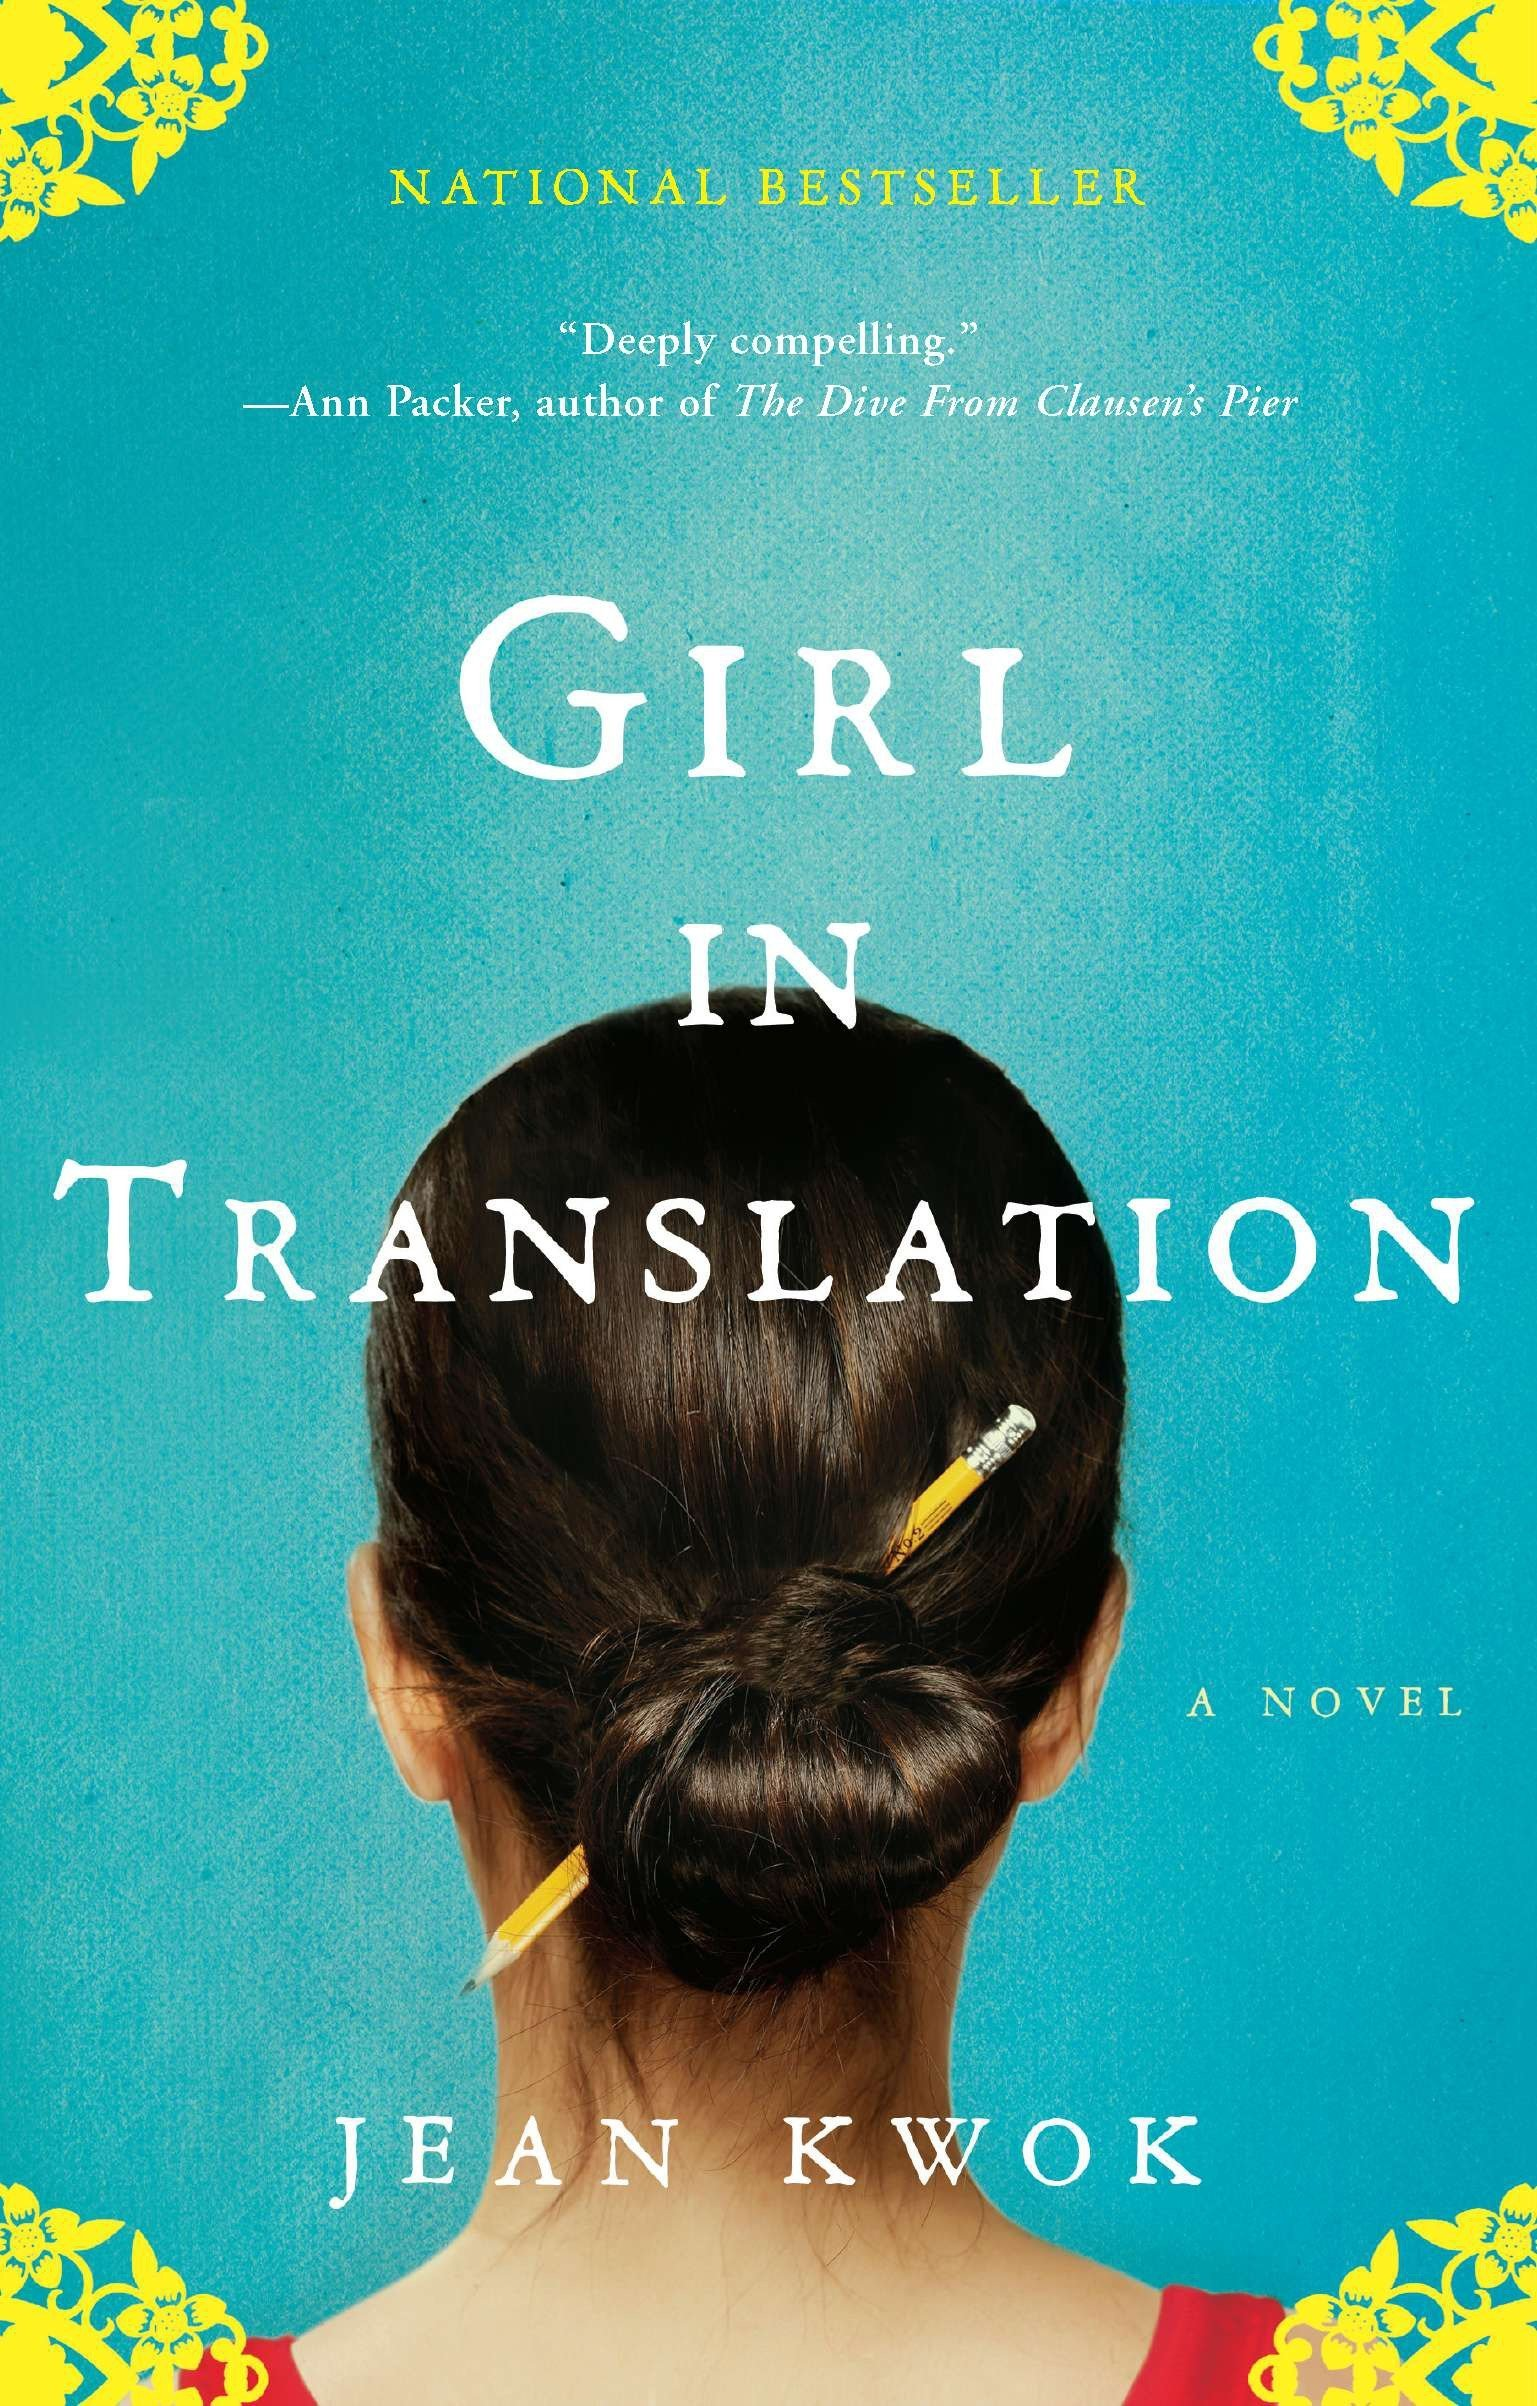 Image result for Girl in Translation by Jean Kwok